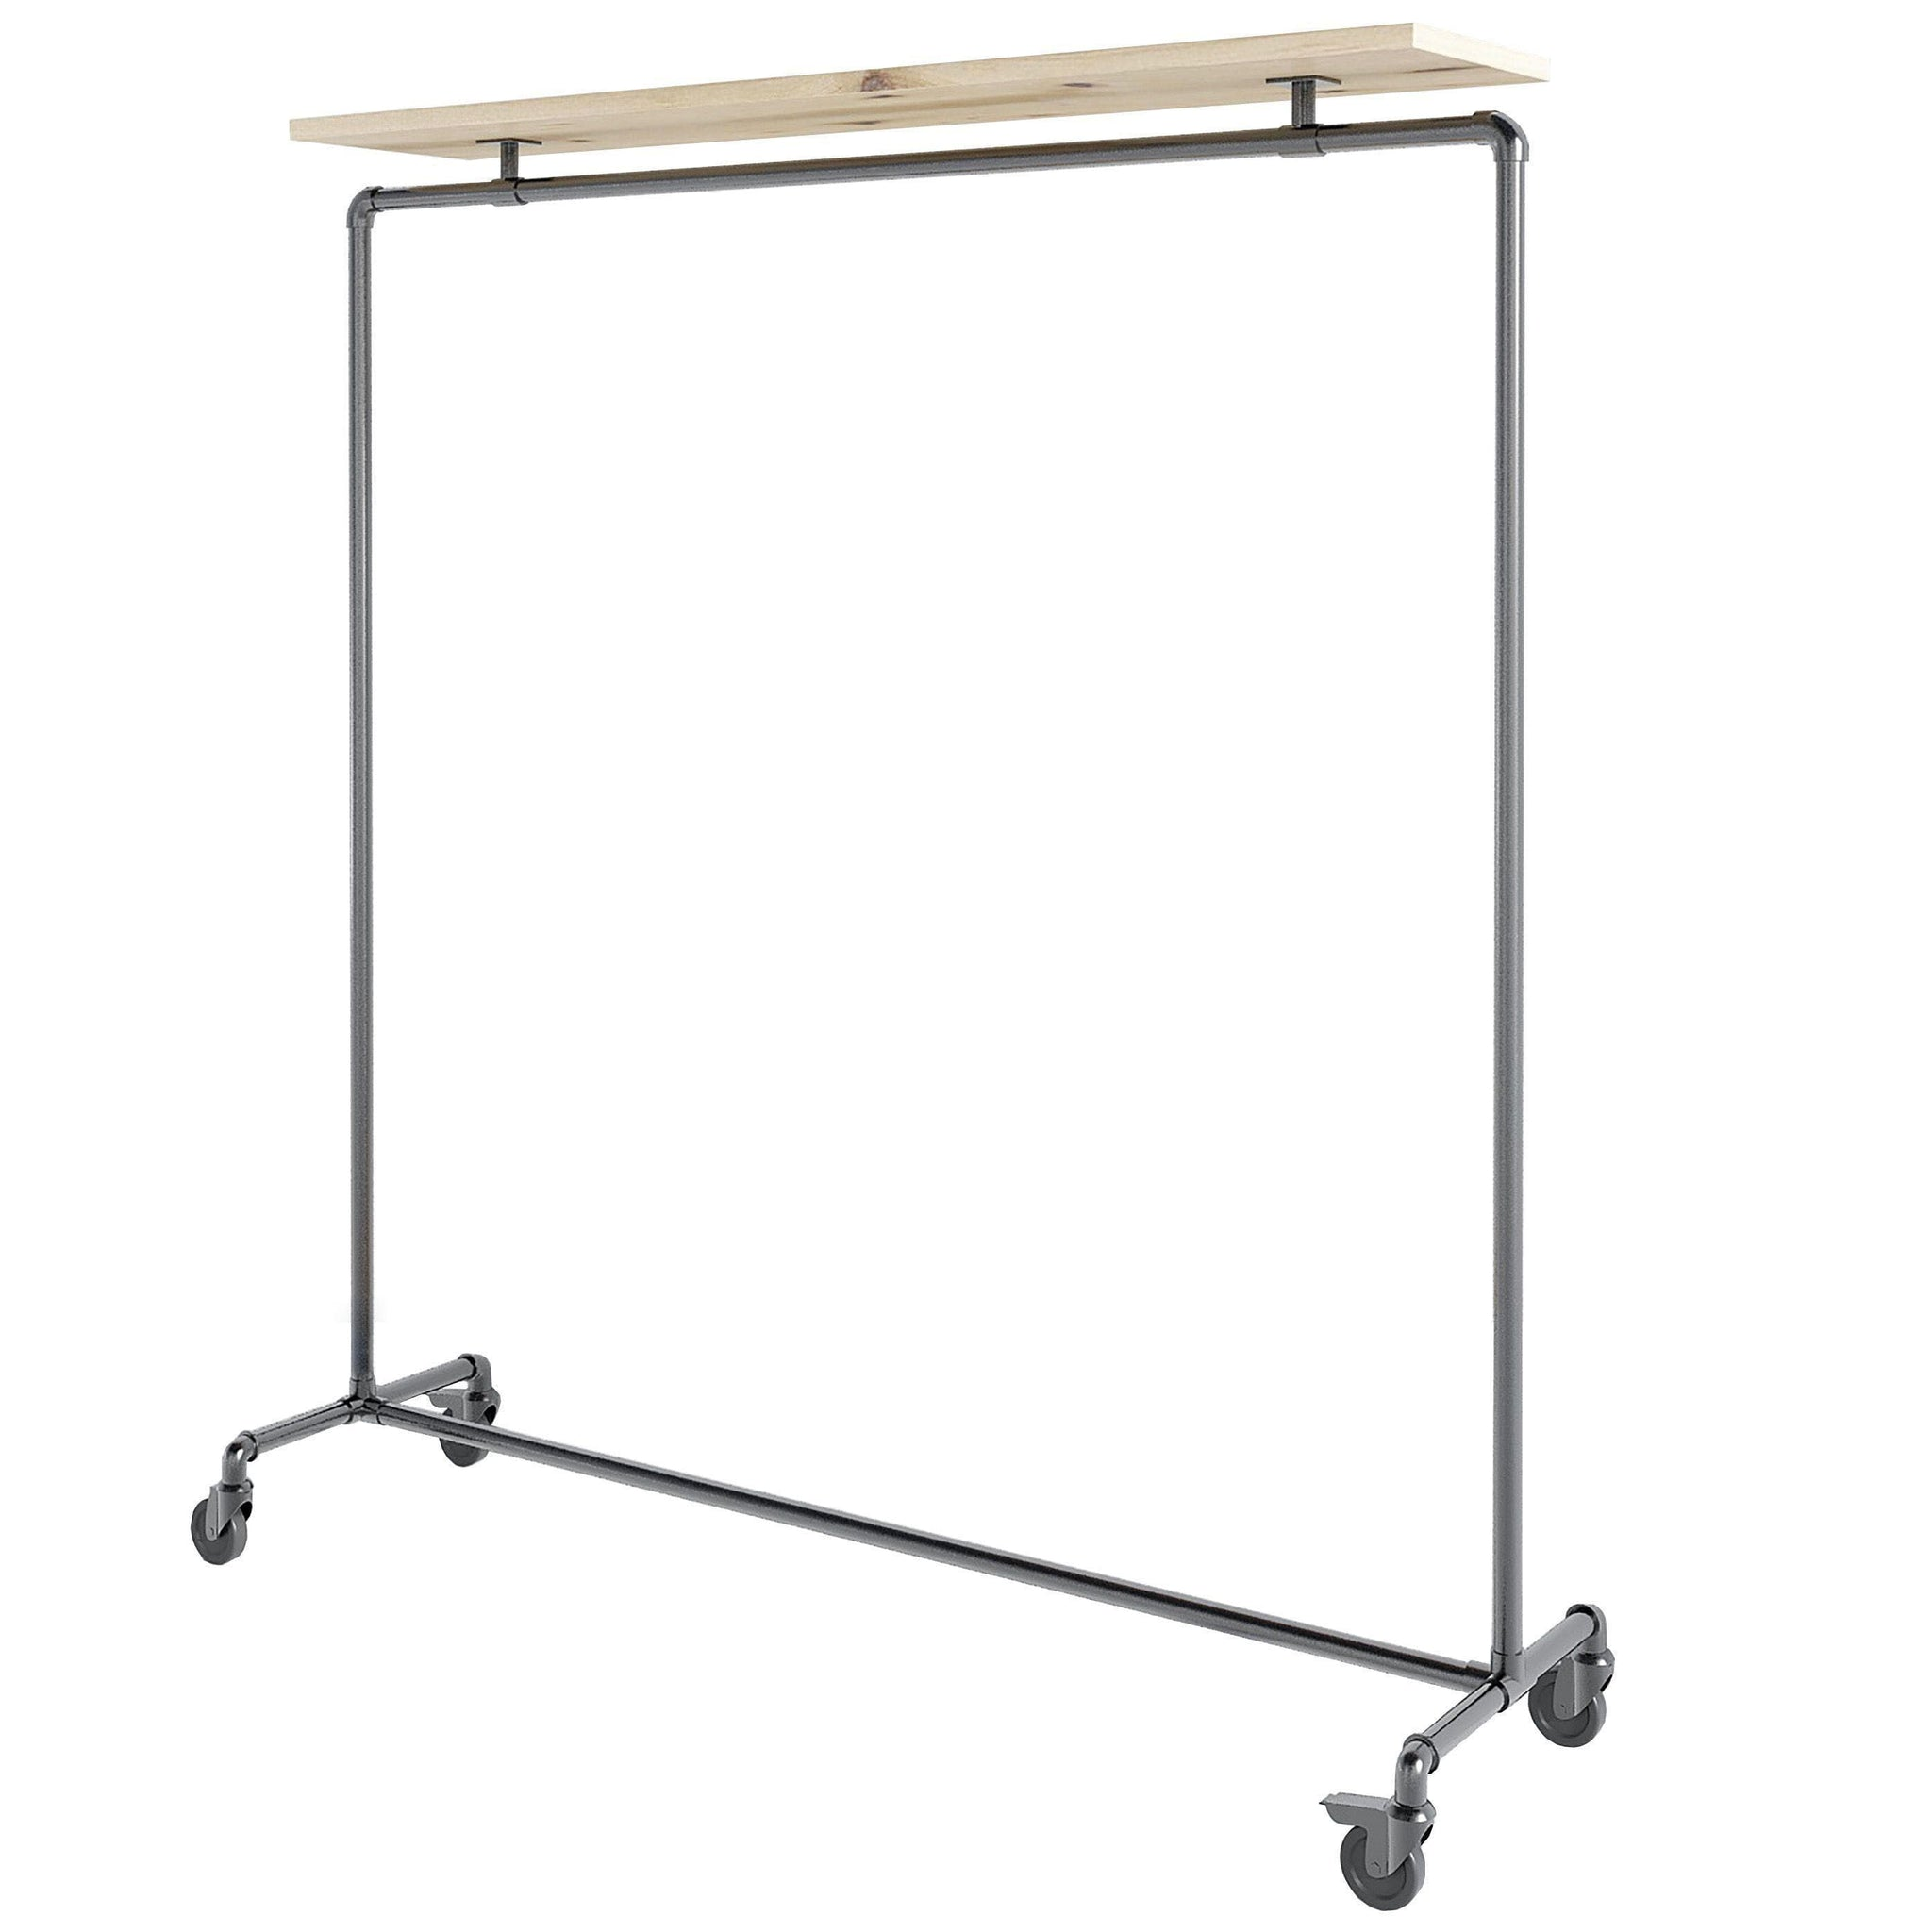 Ziito Clothes Rail Wood Top Shelf Tøjstativ